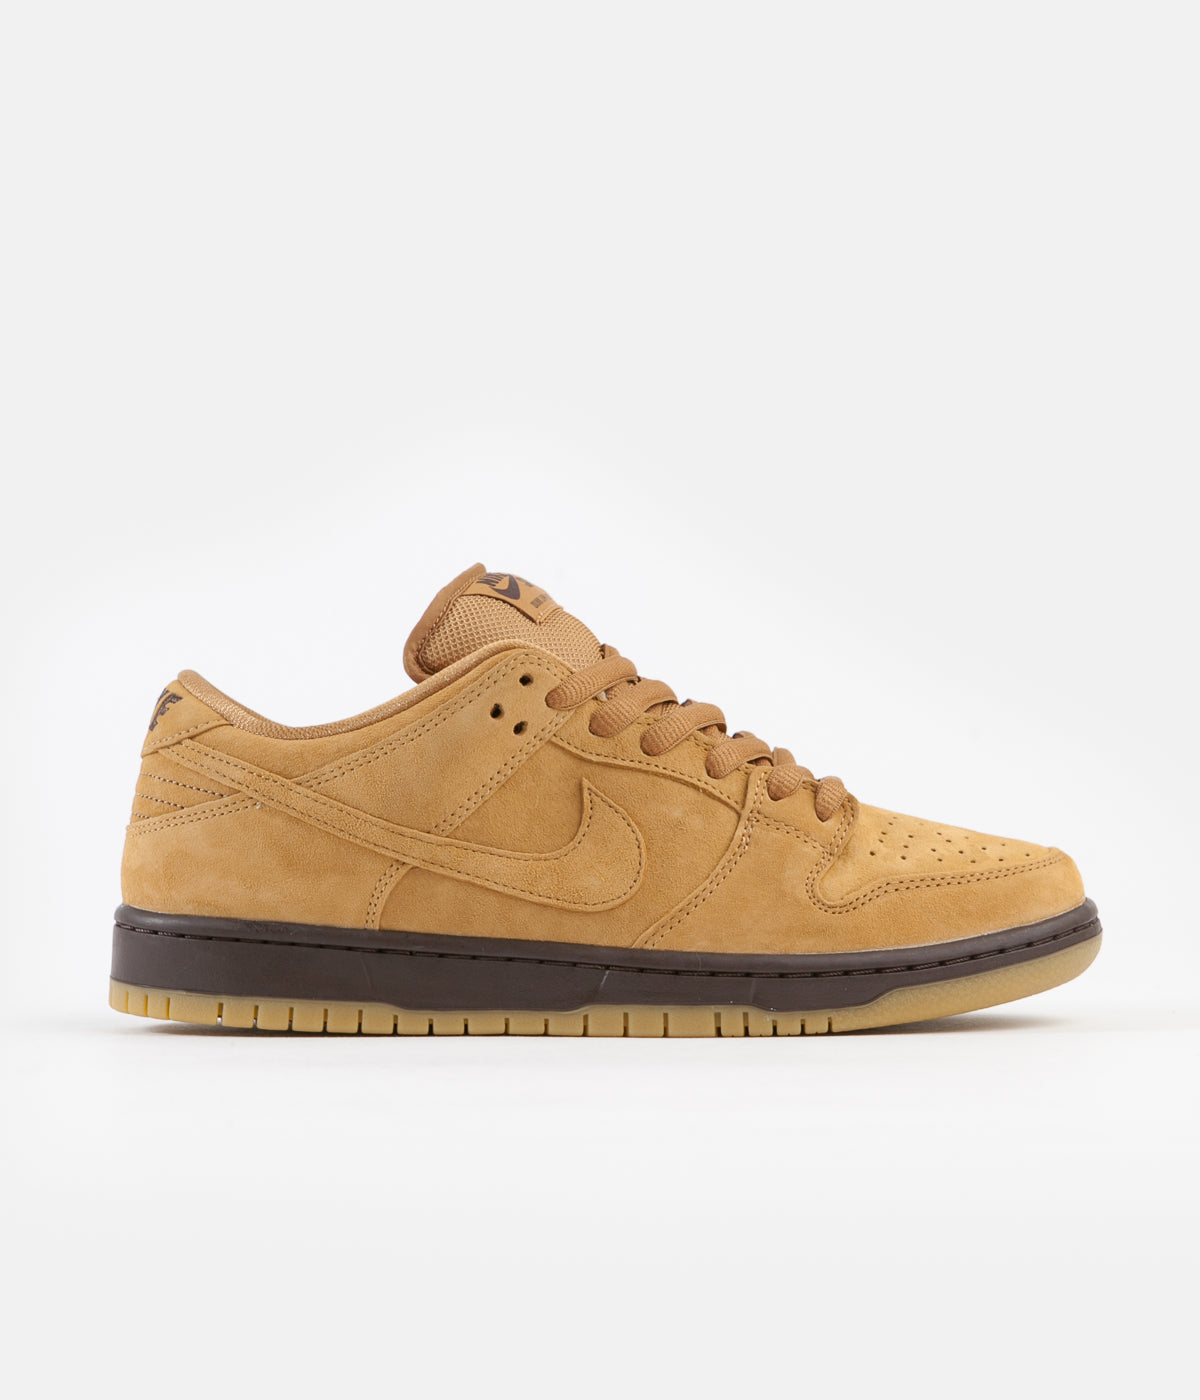 Nike SB Dunk Low Pro 'Wheat' Shoes - Flax / Flax - Flax - Baroque Brown